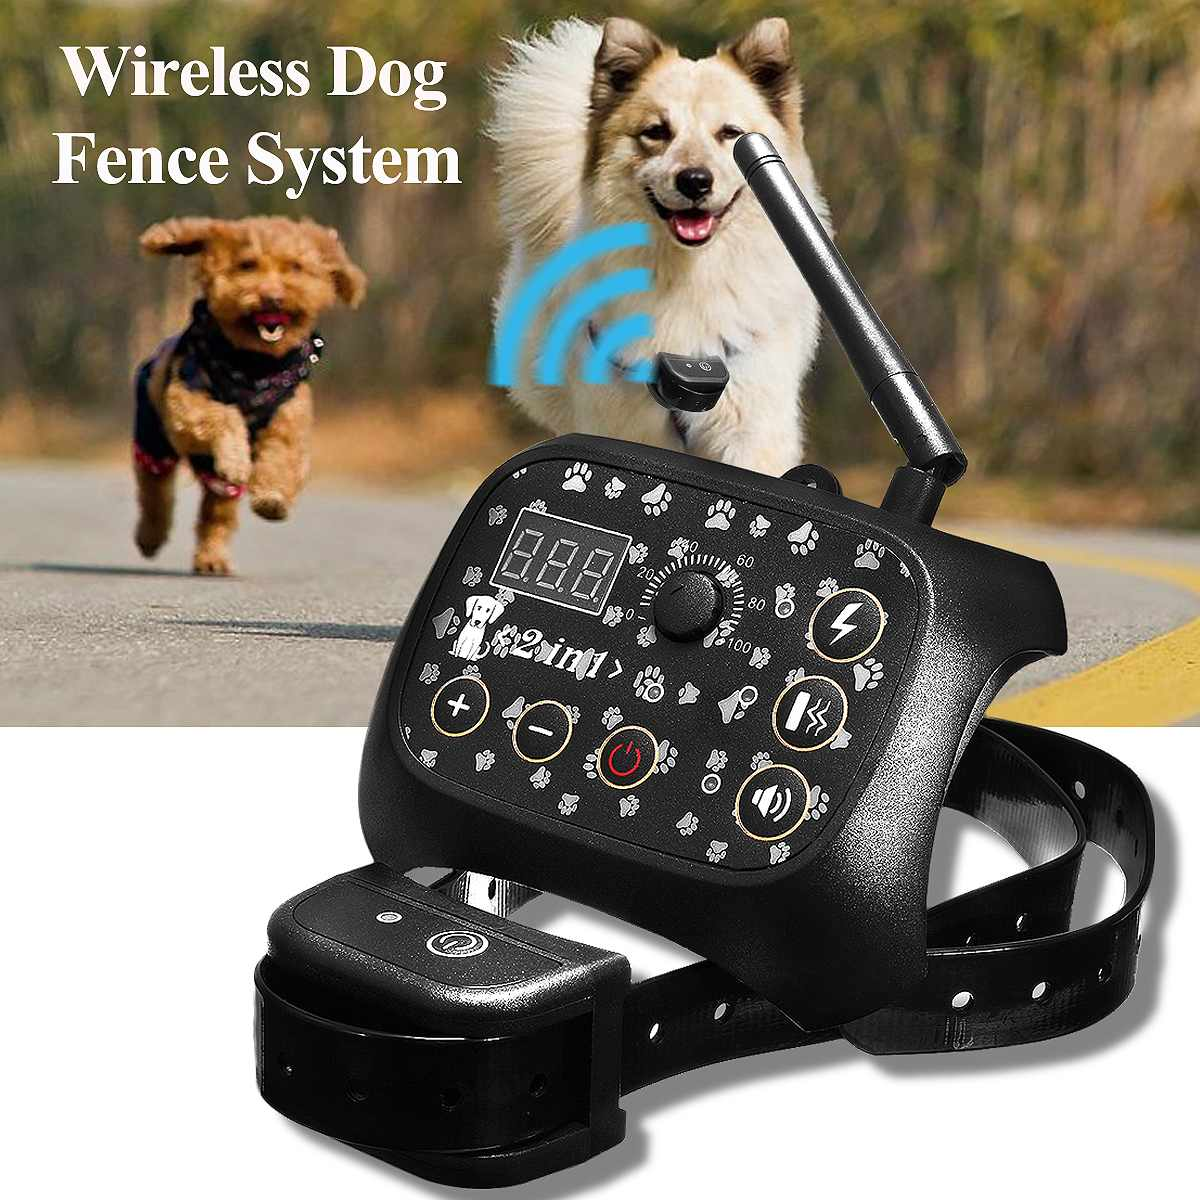 Electronic Wireless Remote Dog Training Collar Fence System Dog Training Electric Shock Collar Pet Shop Dog Acessorios